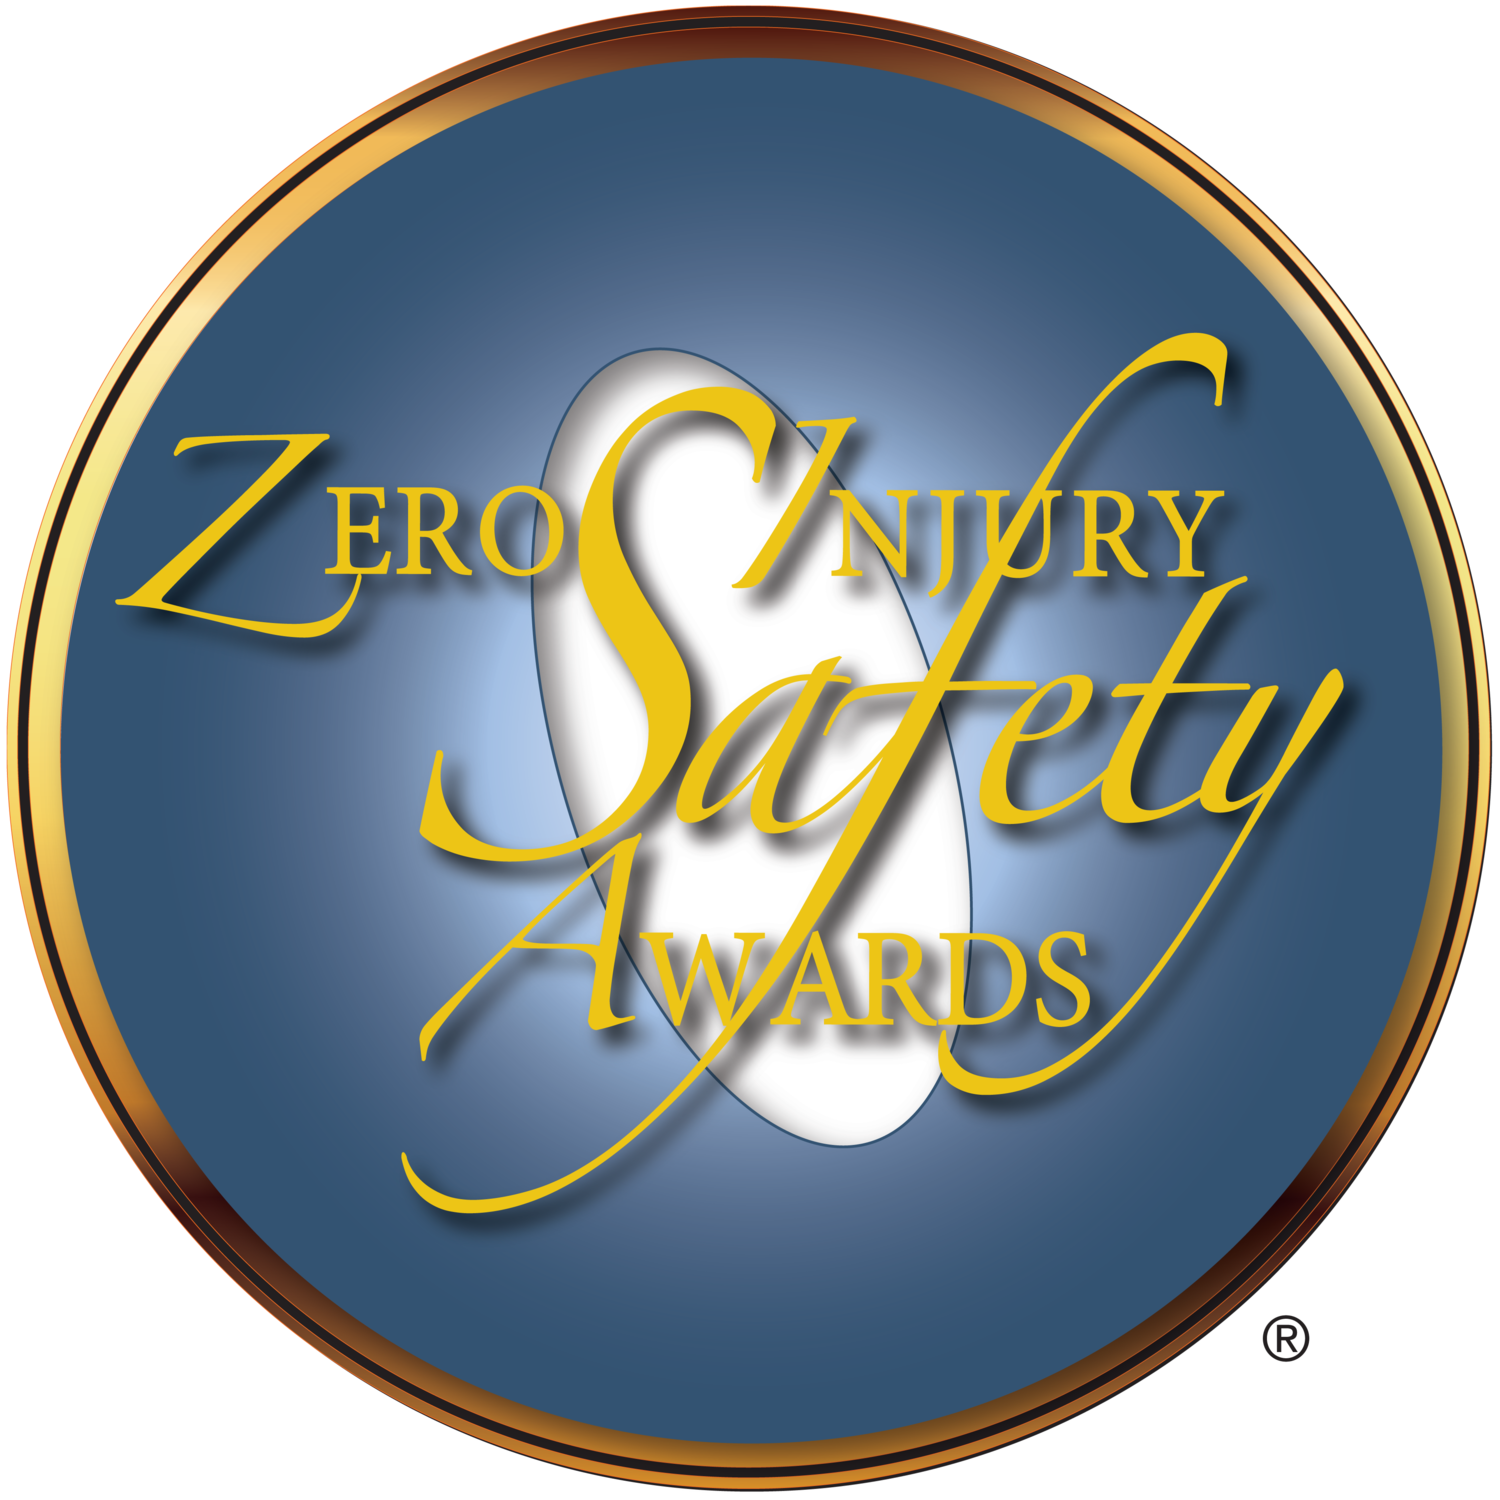 Zero Injury Safety Awards